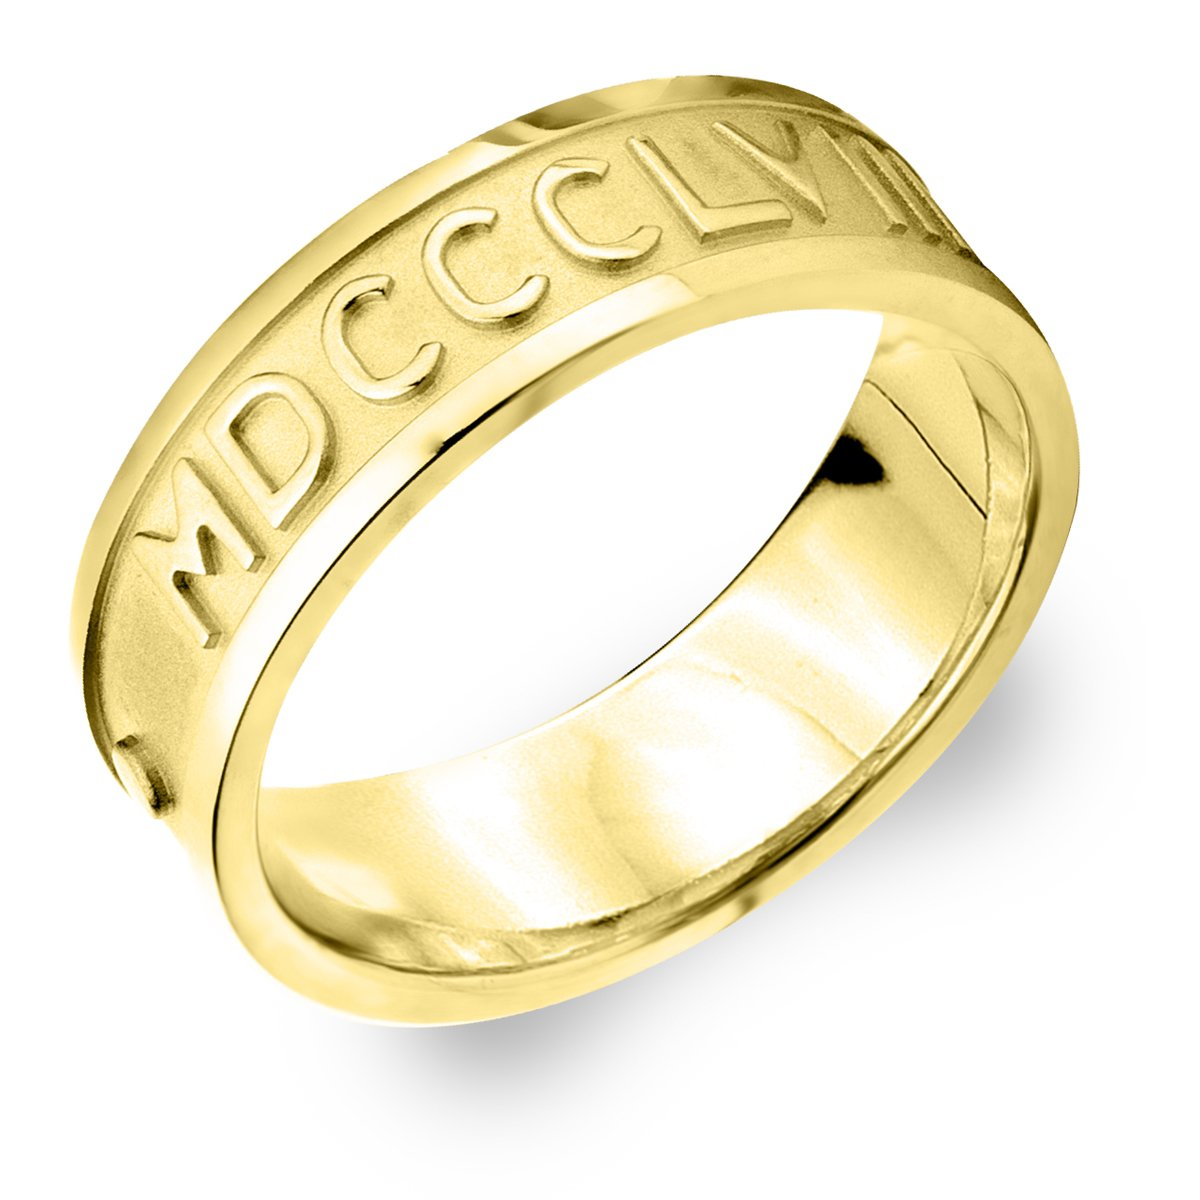 1bad72a9f Amazon.com: 14K Yellow Gold Women's Roman Numeral Ring Customized With Your  Date: Jewelry